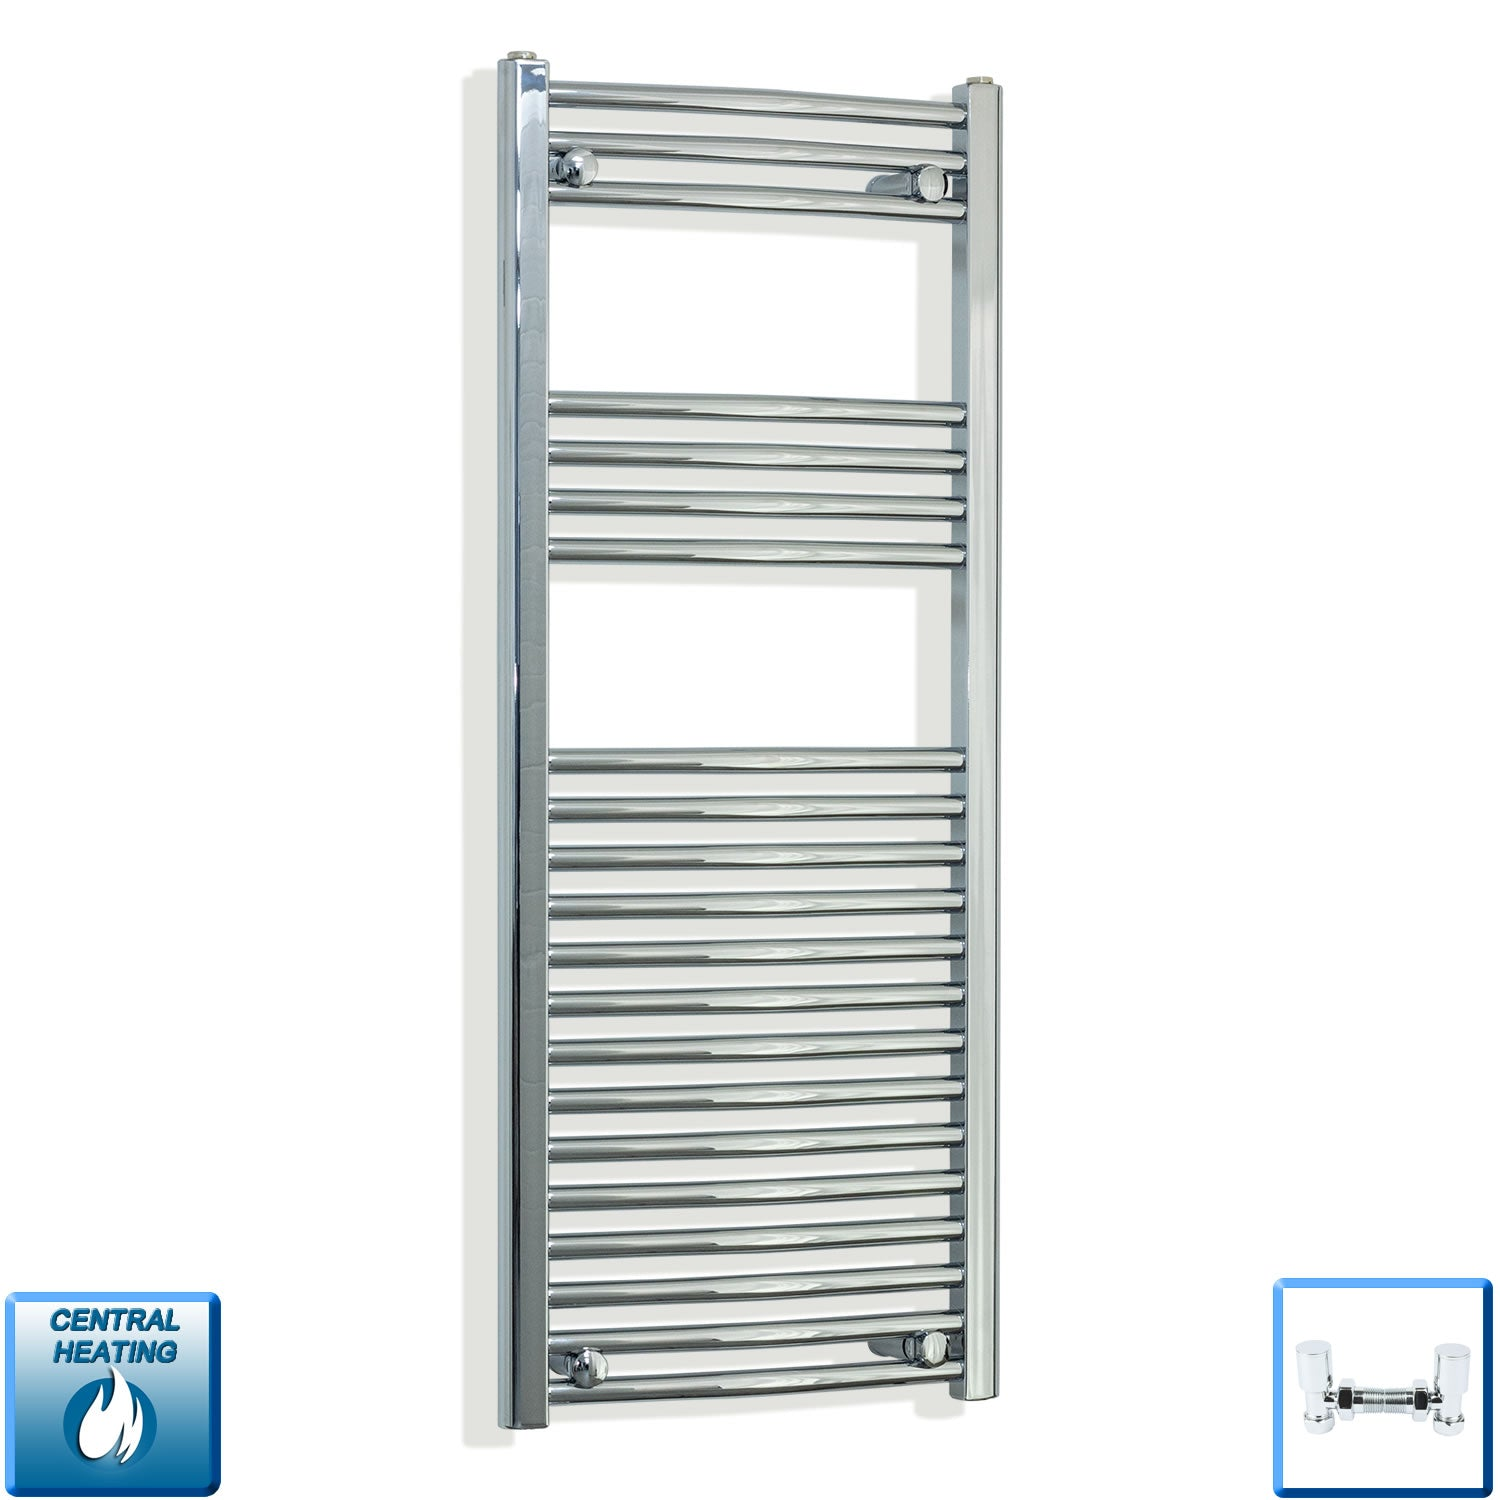 450mm Wide 1100mm High Curved Chrome Heated Towel Rail Radiator HTR,With Angled Valve